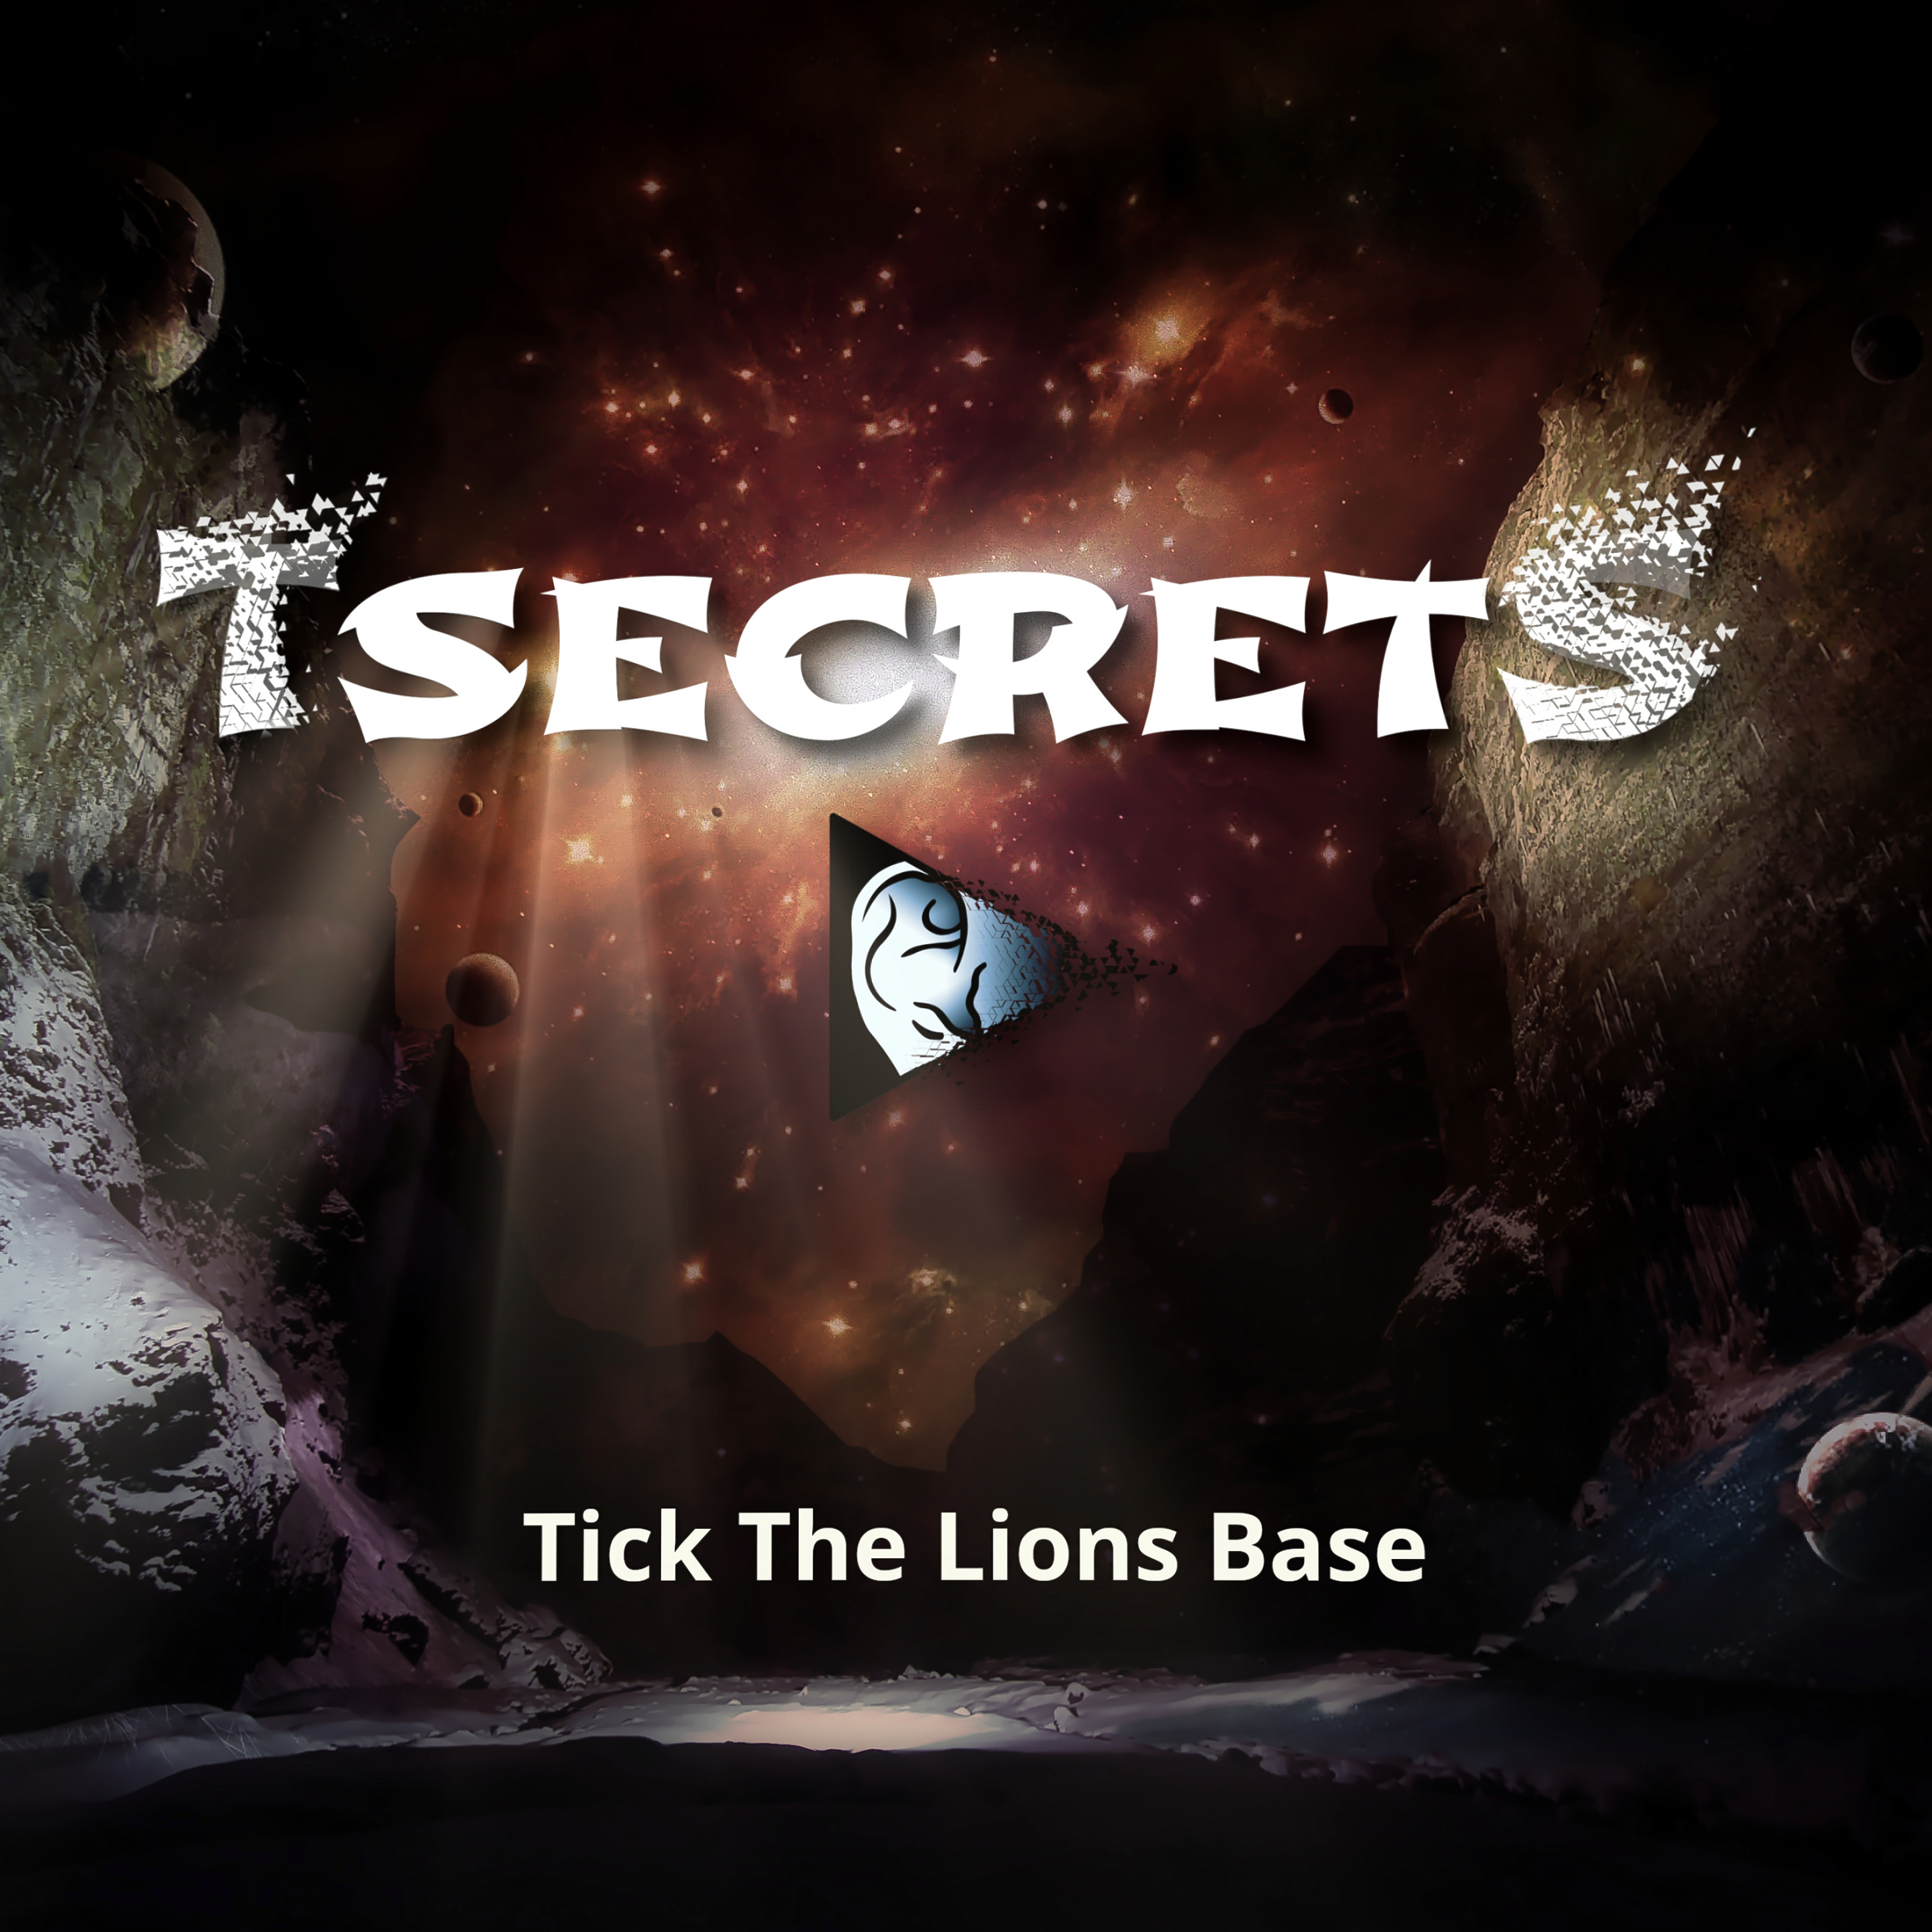 Tick-The-Lions-Base - English